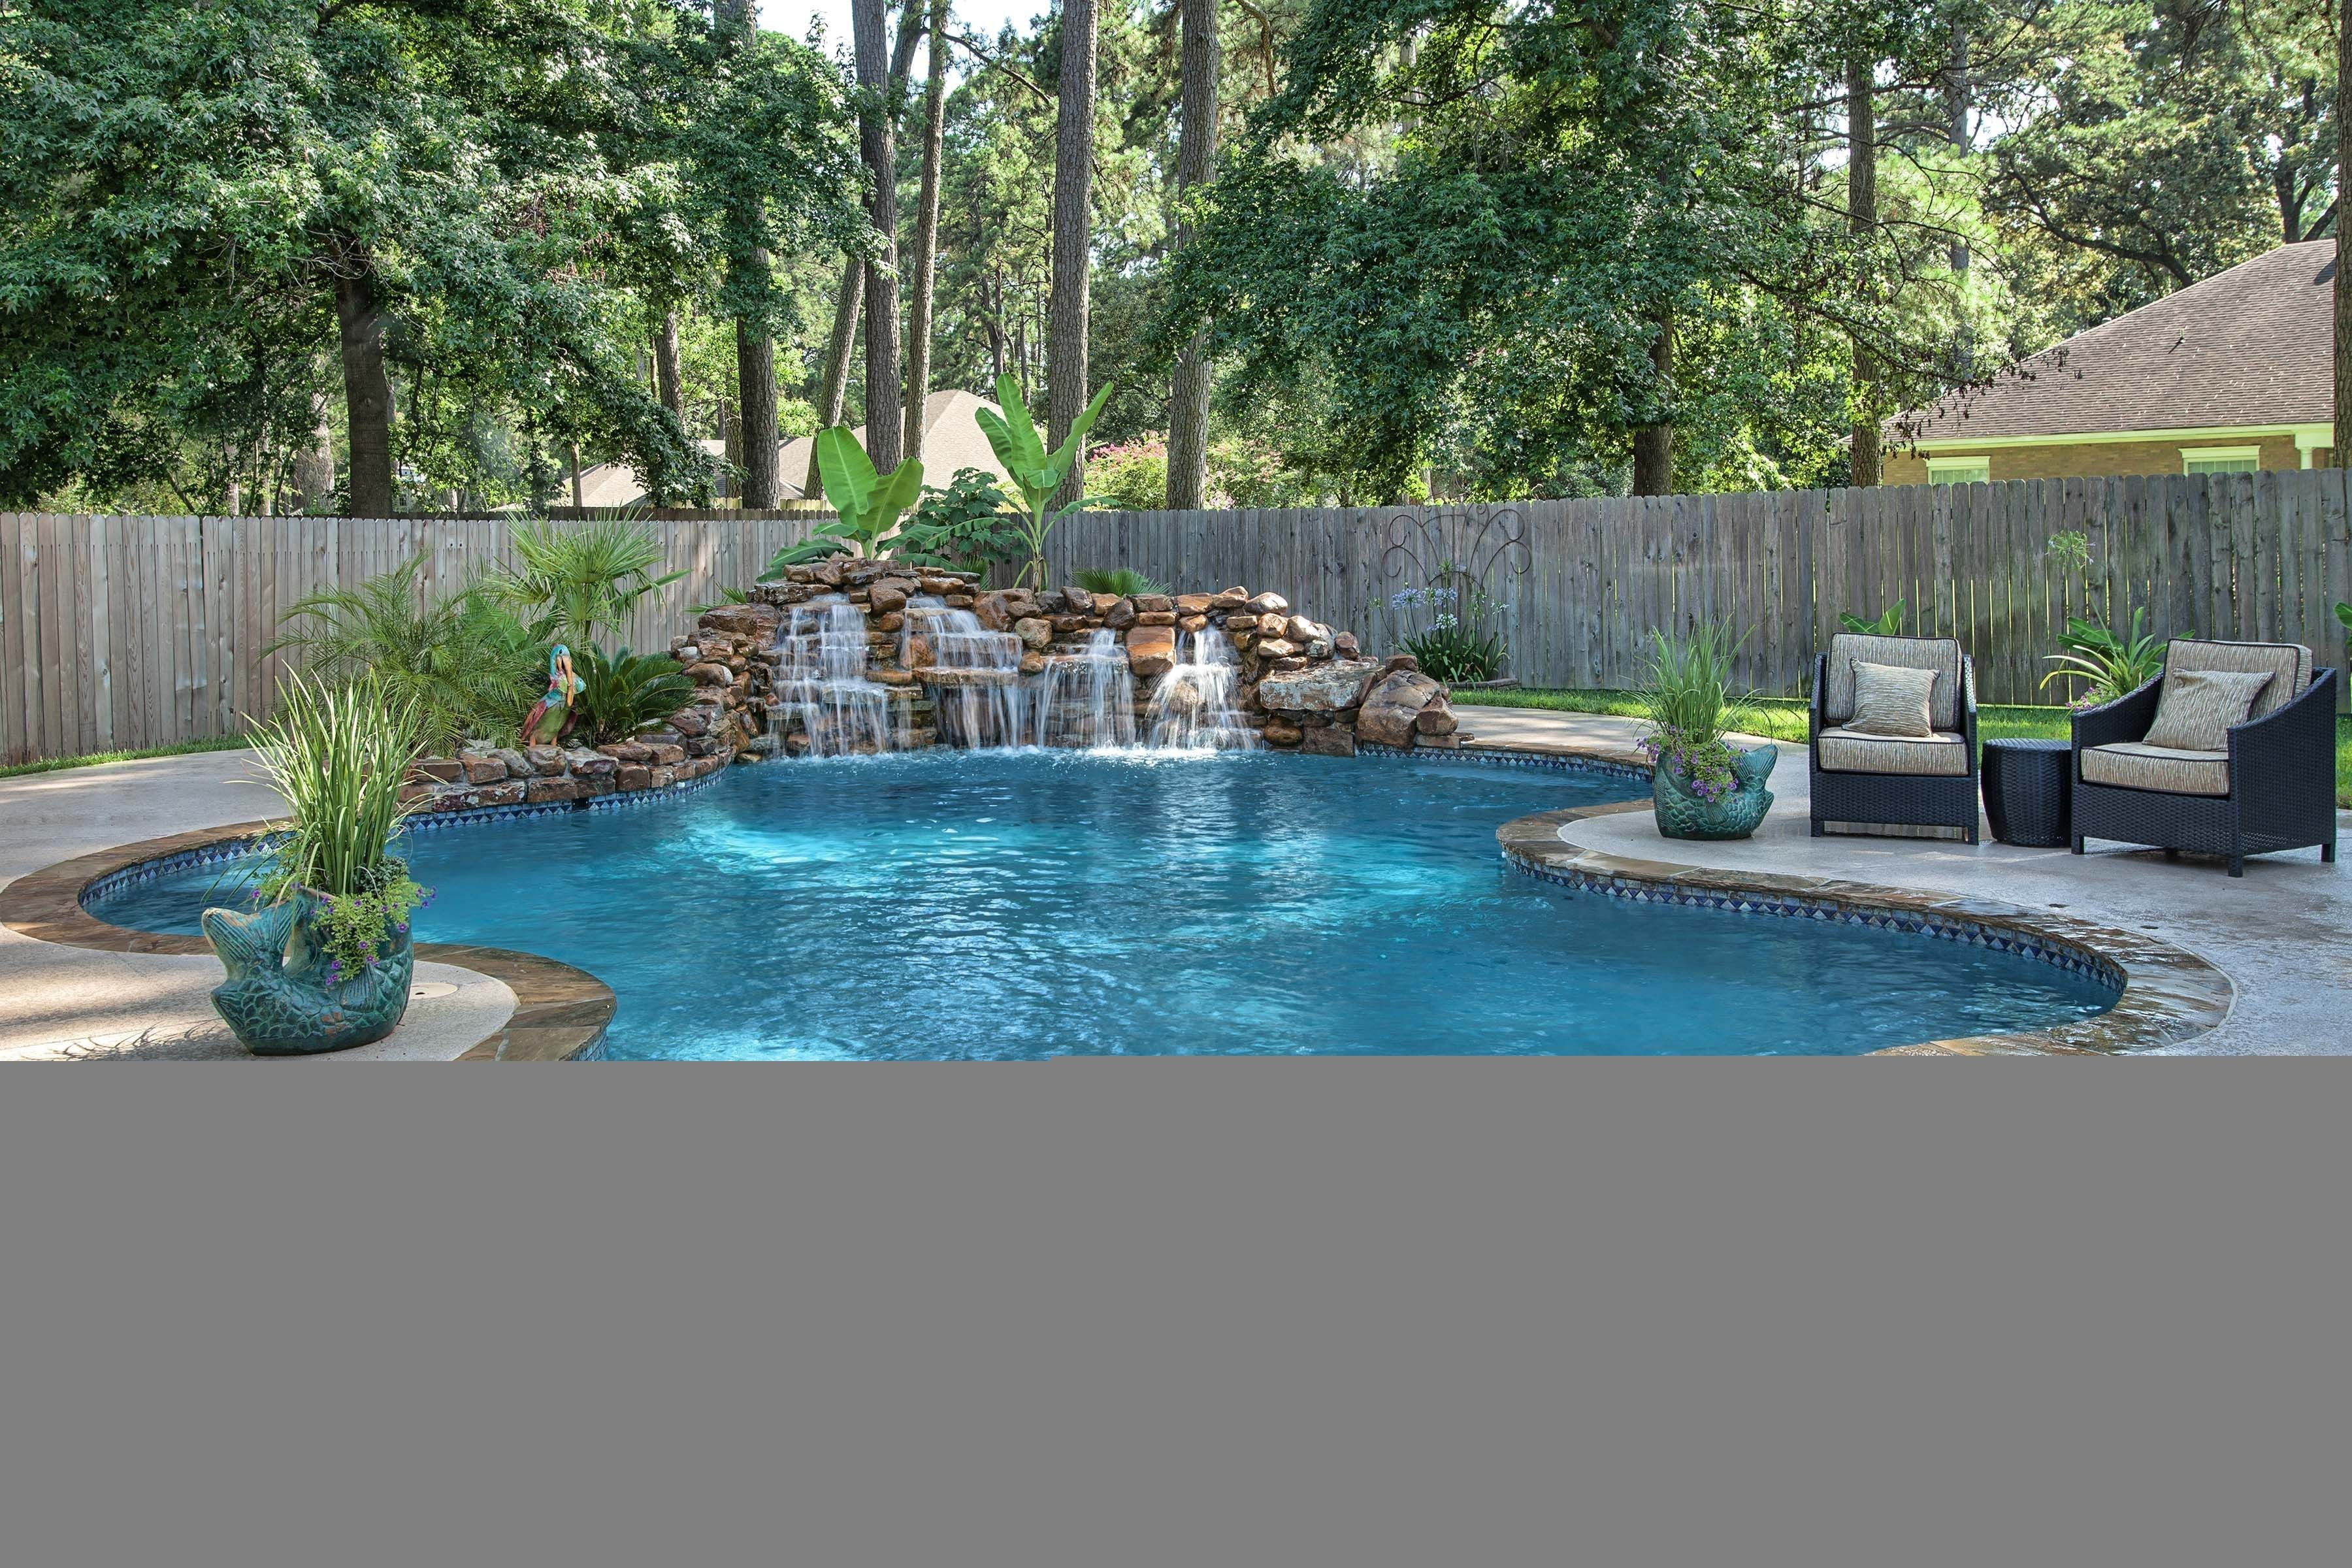 Gorgeous Backyard Designs Ideas With Swimming Pool 24 Backyard Swimming Pools Backyard Design